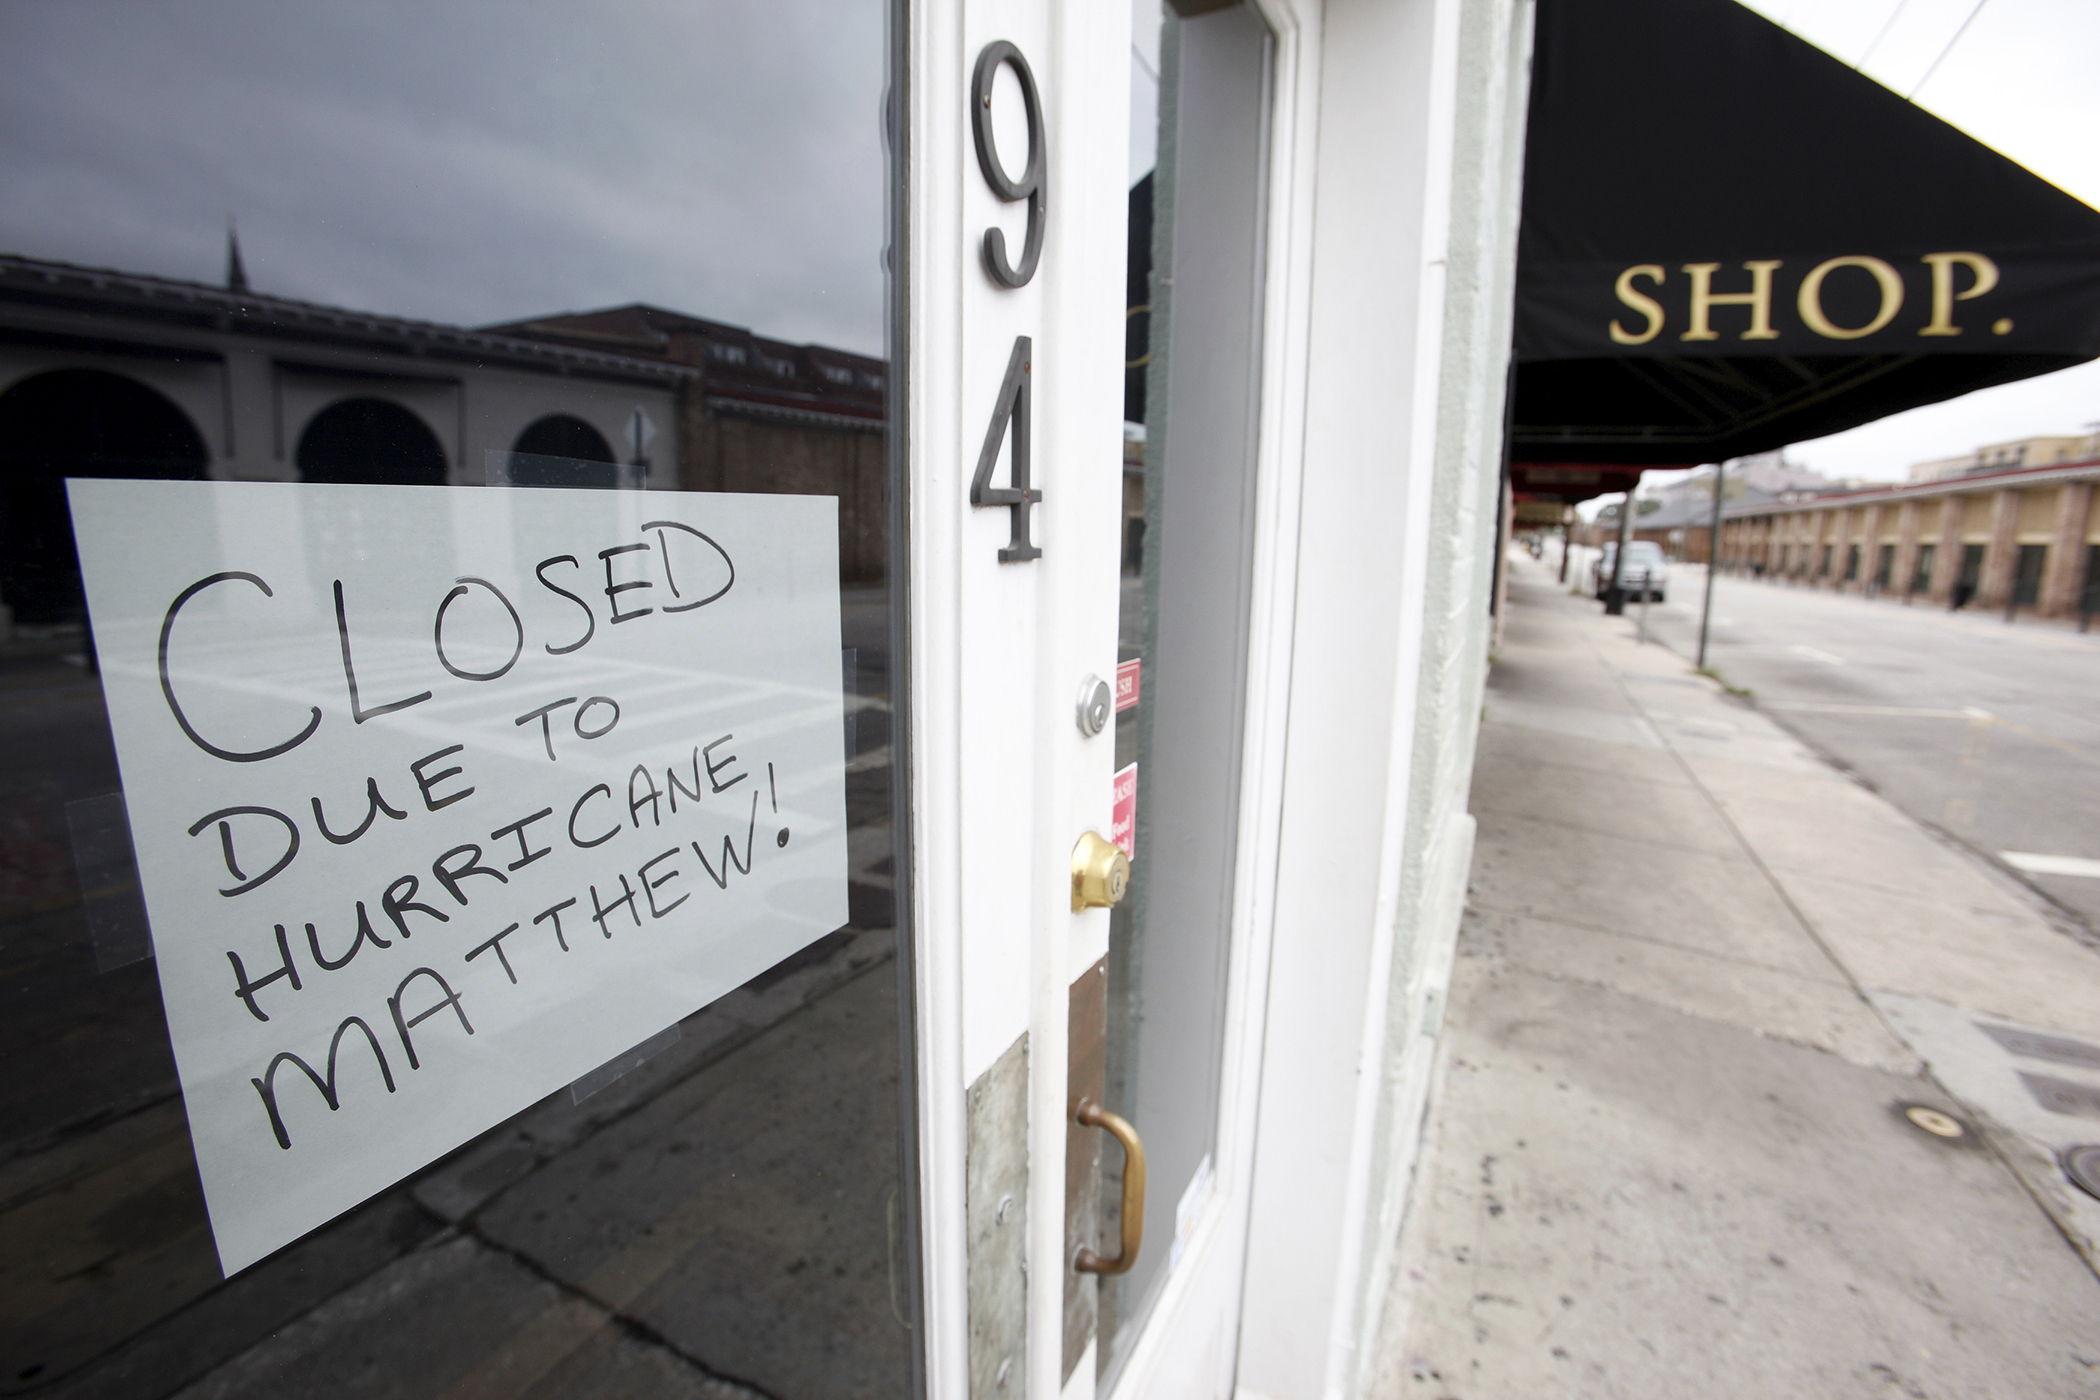 A sign in a shop window explains that they are closed due to the threat of Hurricane Matthew, in the mostly-empty historic district of Charleston, South Carolina on October 6, 2016.